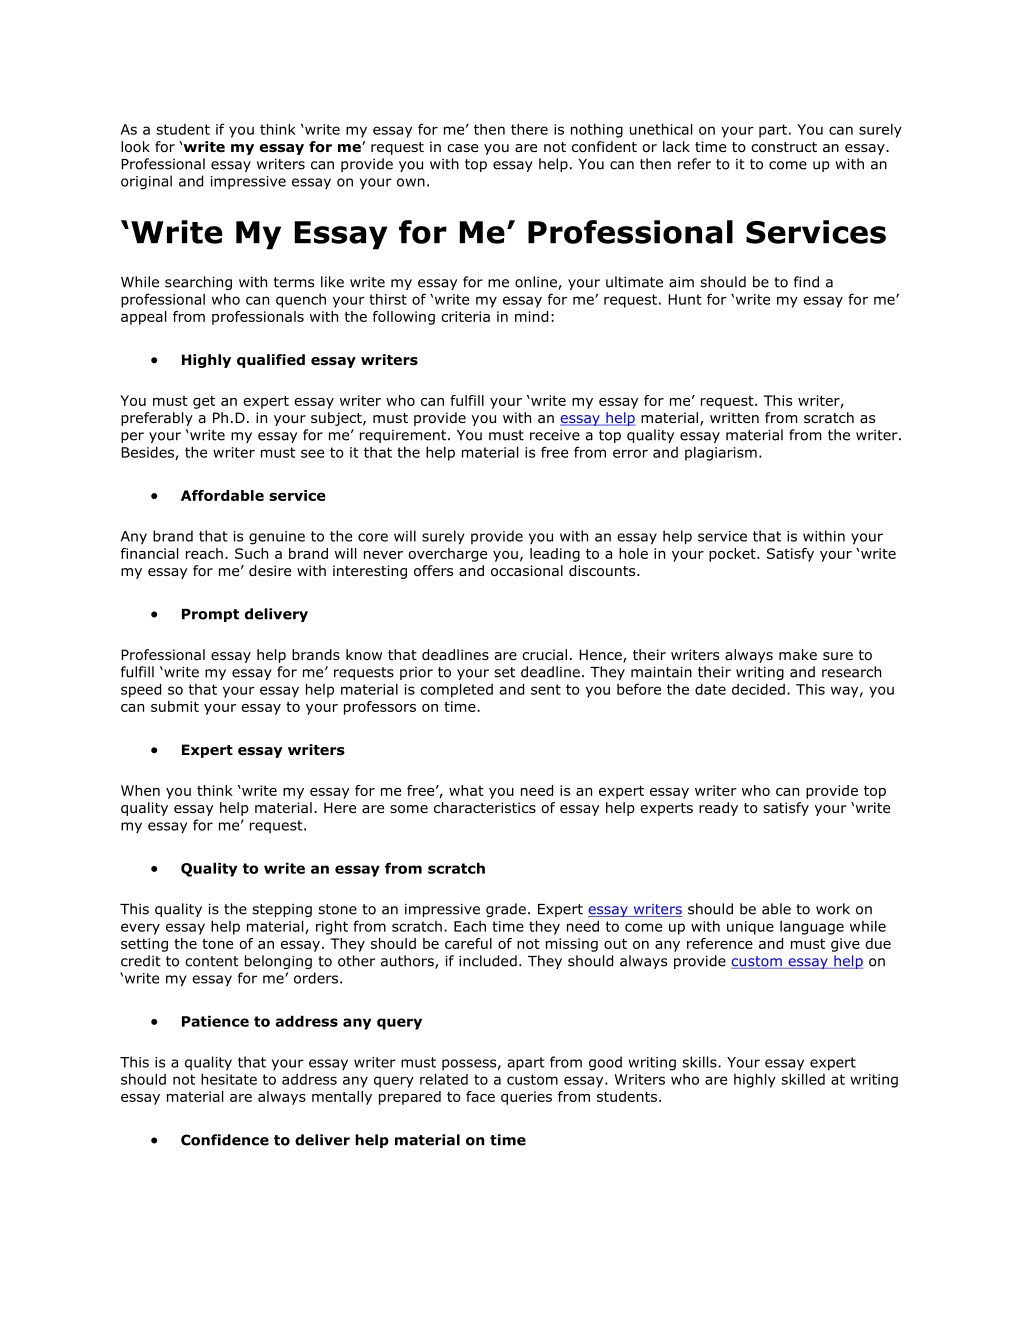 017 Write My Essay For Me Example As Student If You Think Surprising Discount Code Cheap Please Full